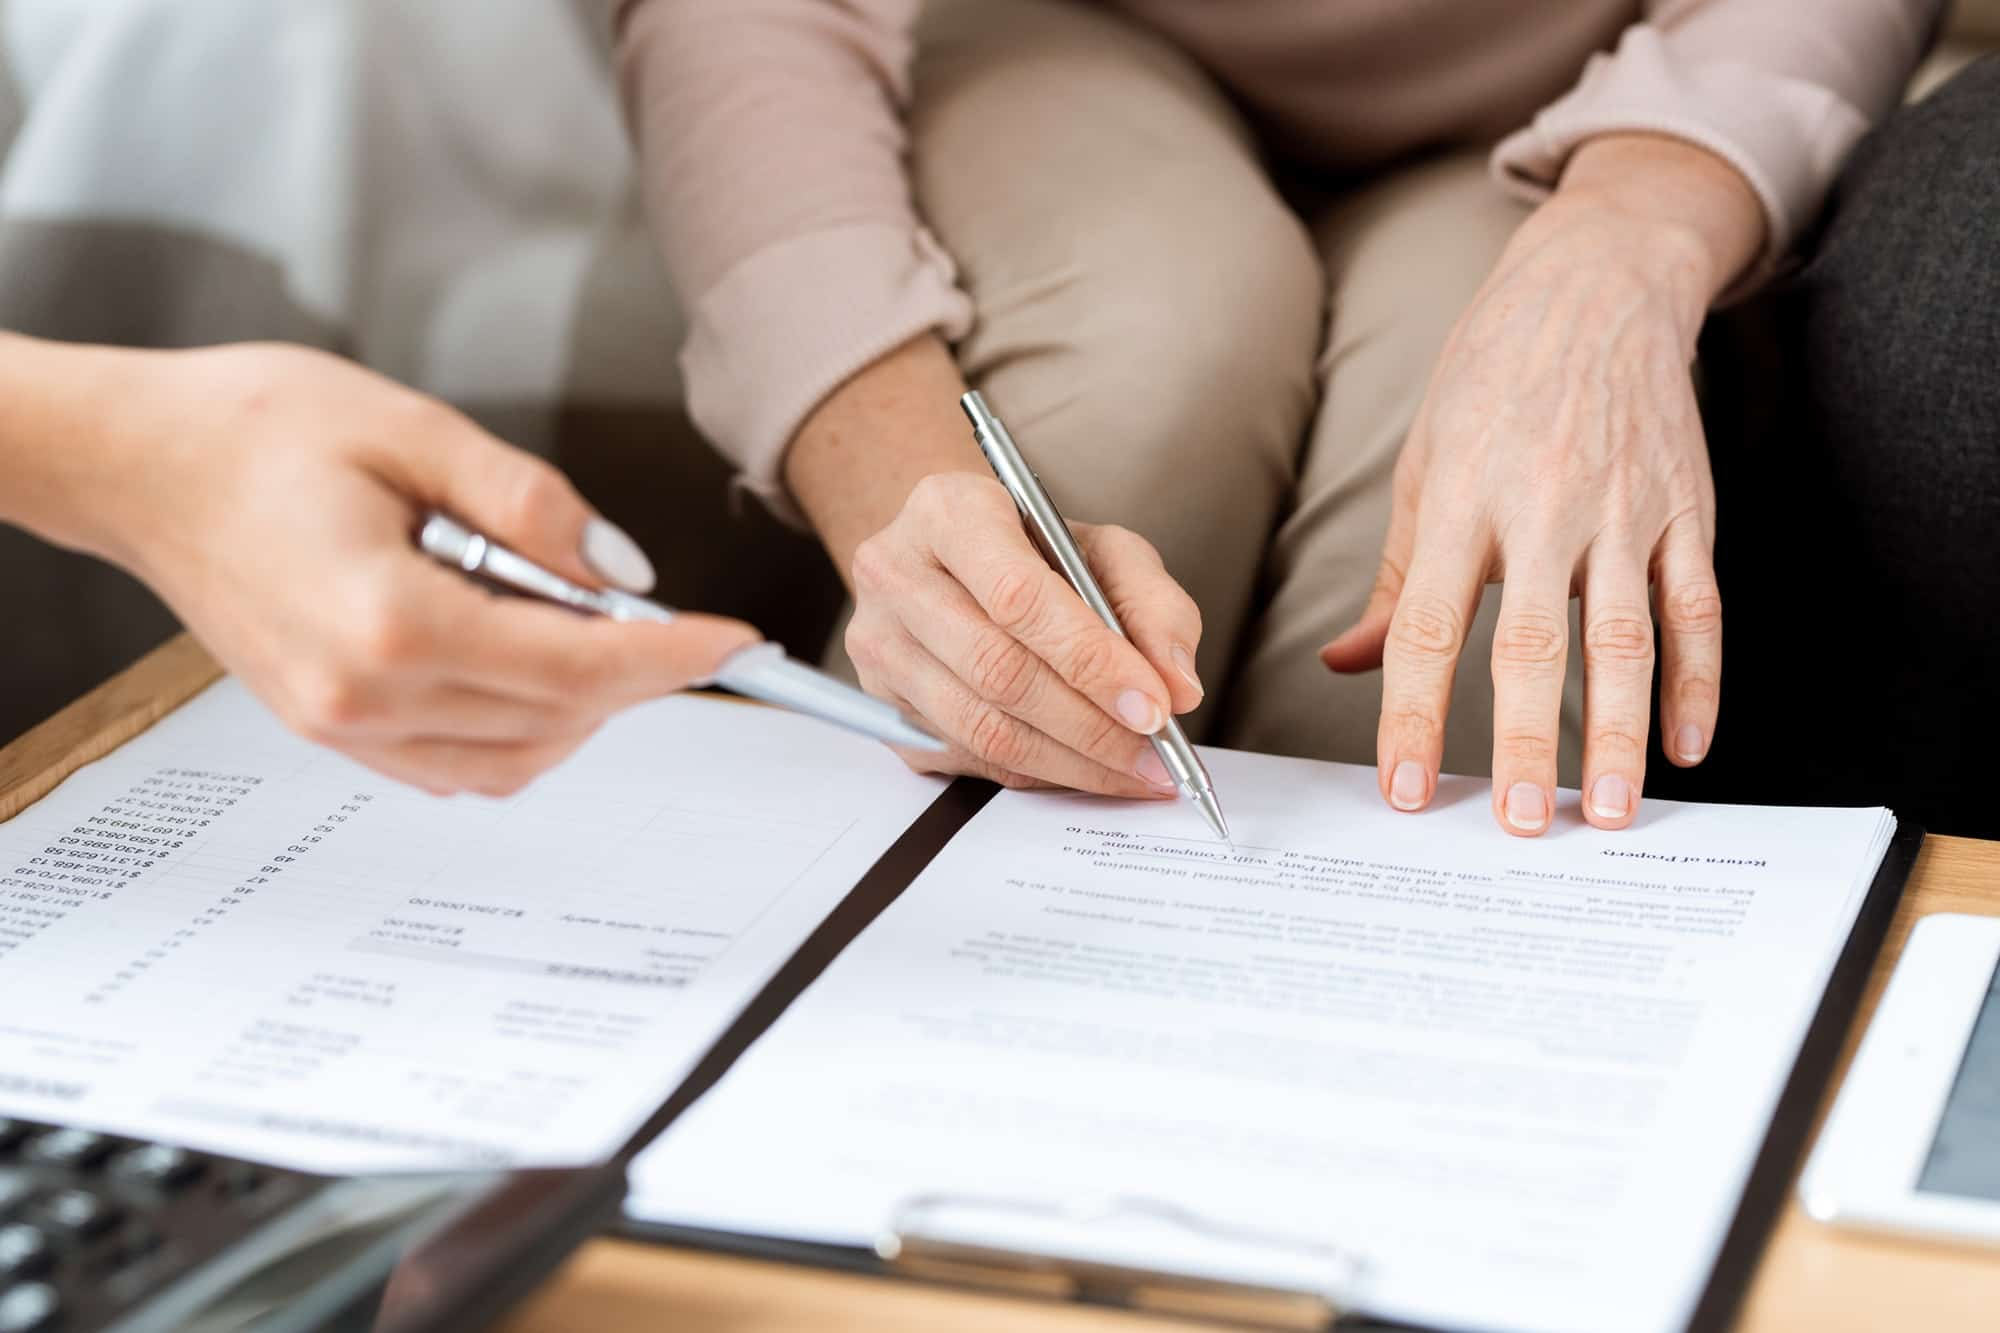 Hands of mature client and real estate agent with pens pointing at contract